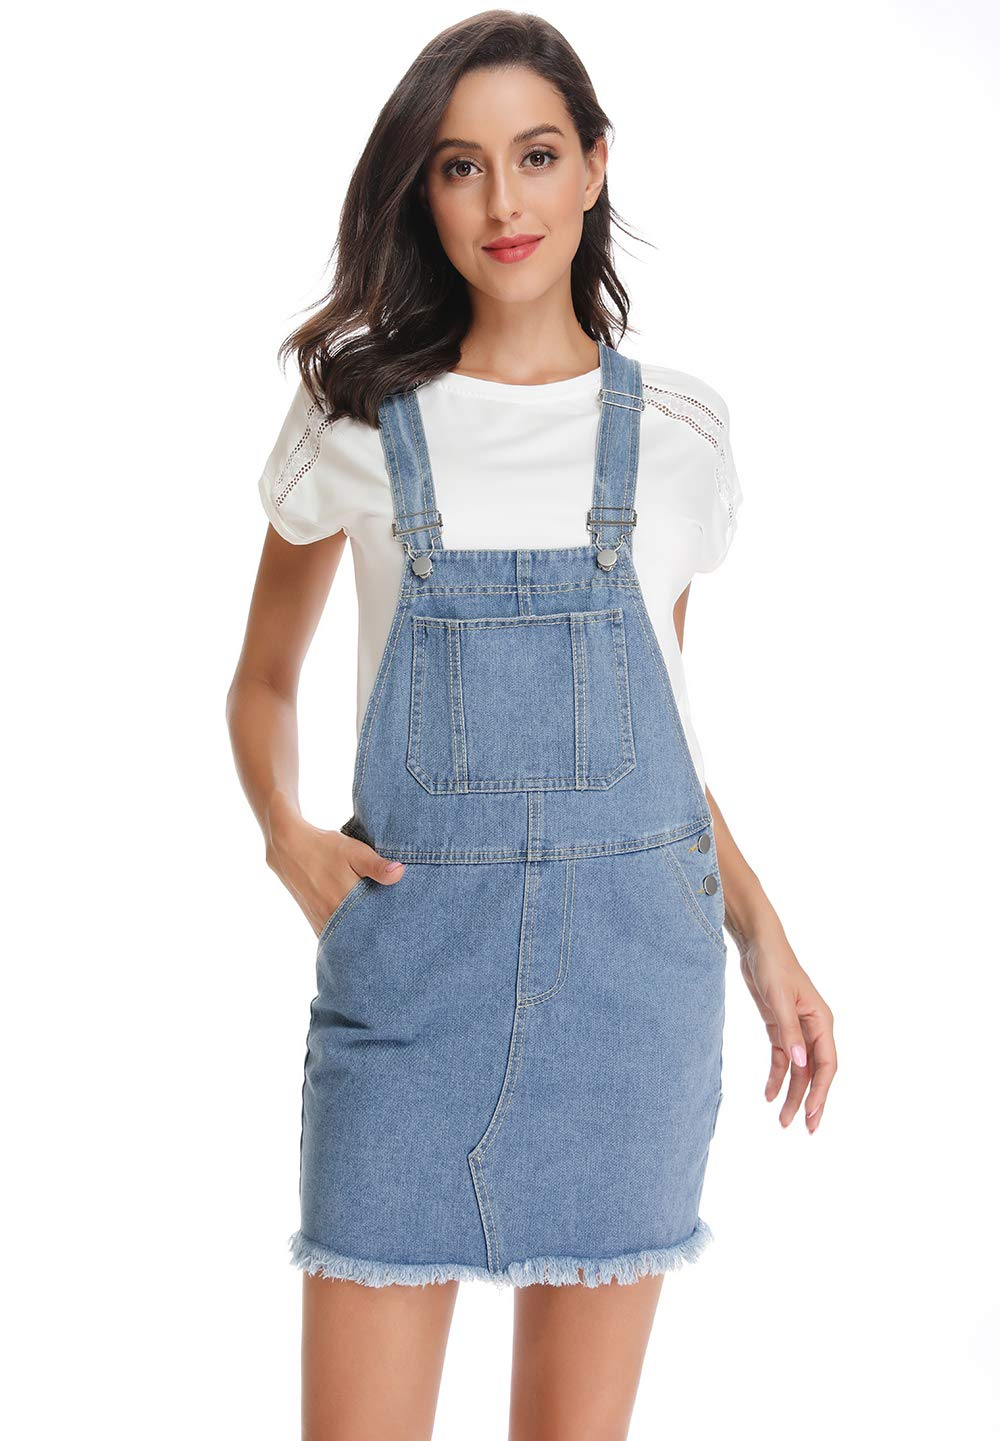 Women's Classic Adjustable Strap Distressed Denim Overall Dress with Pocket 3